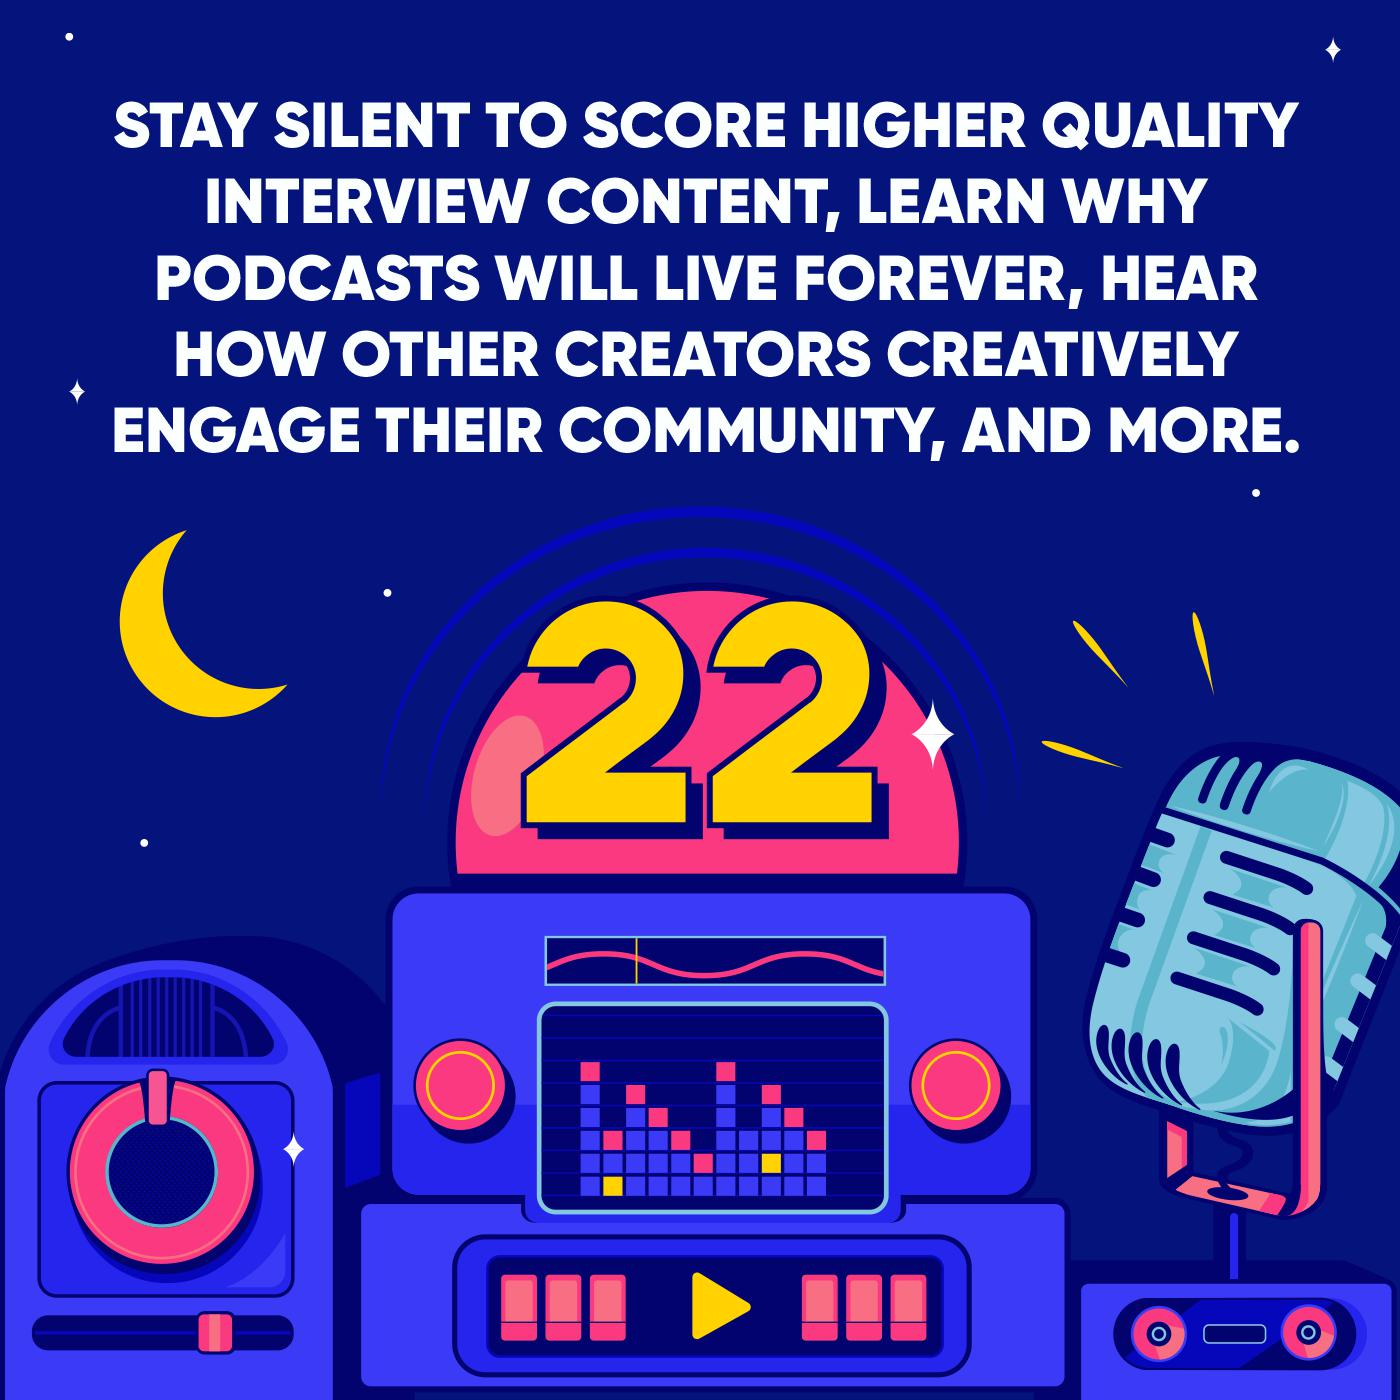 Stay Silent to Score Higher Quality Interview Content, Learn why Podcasts will live Forever, Hear how other Creators Creatively Engage their Community, and More.